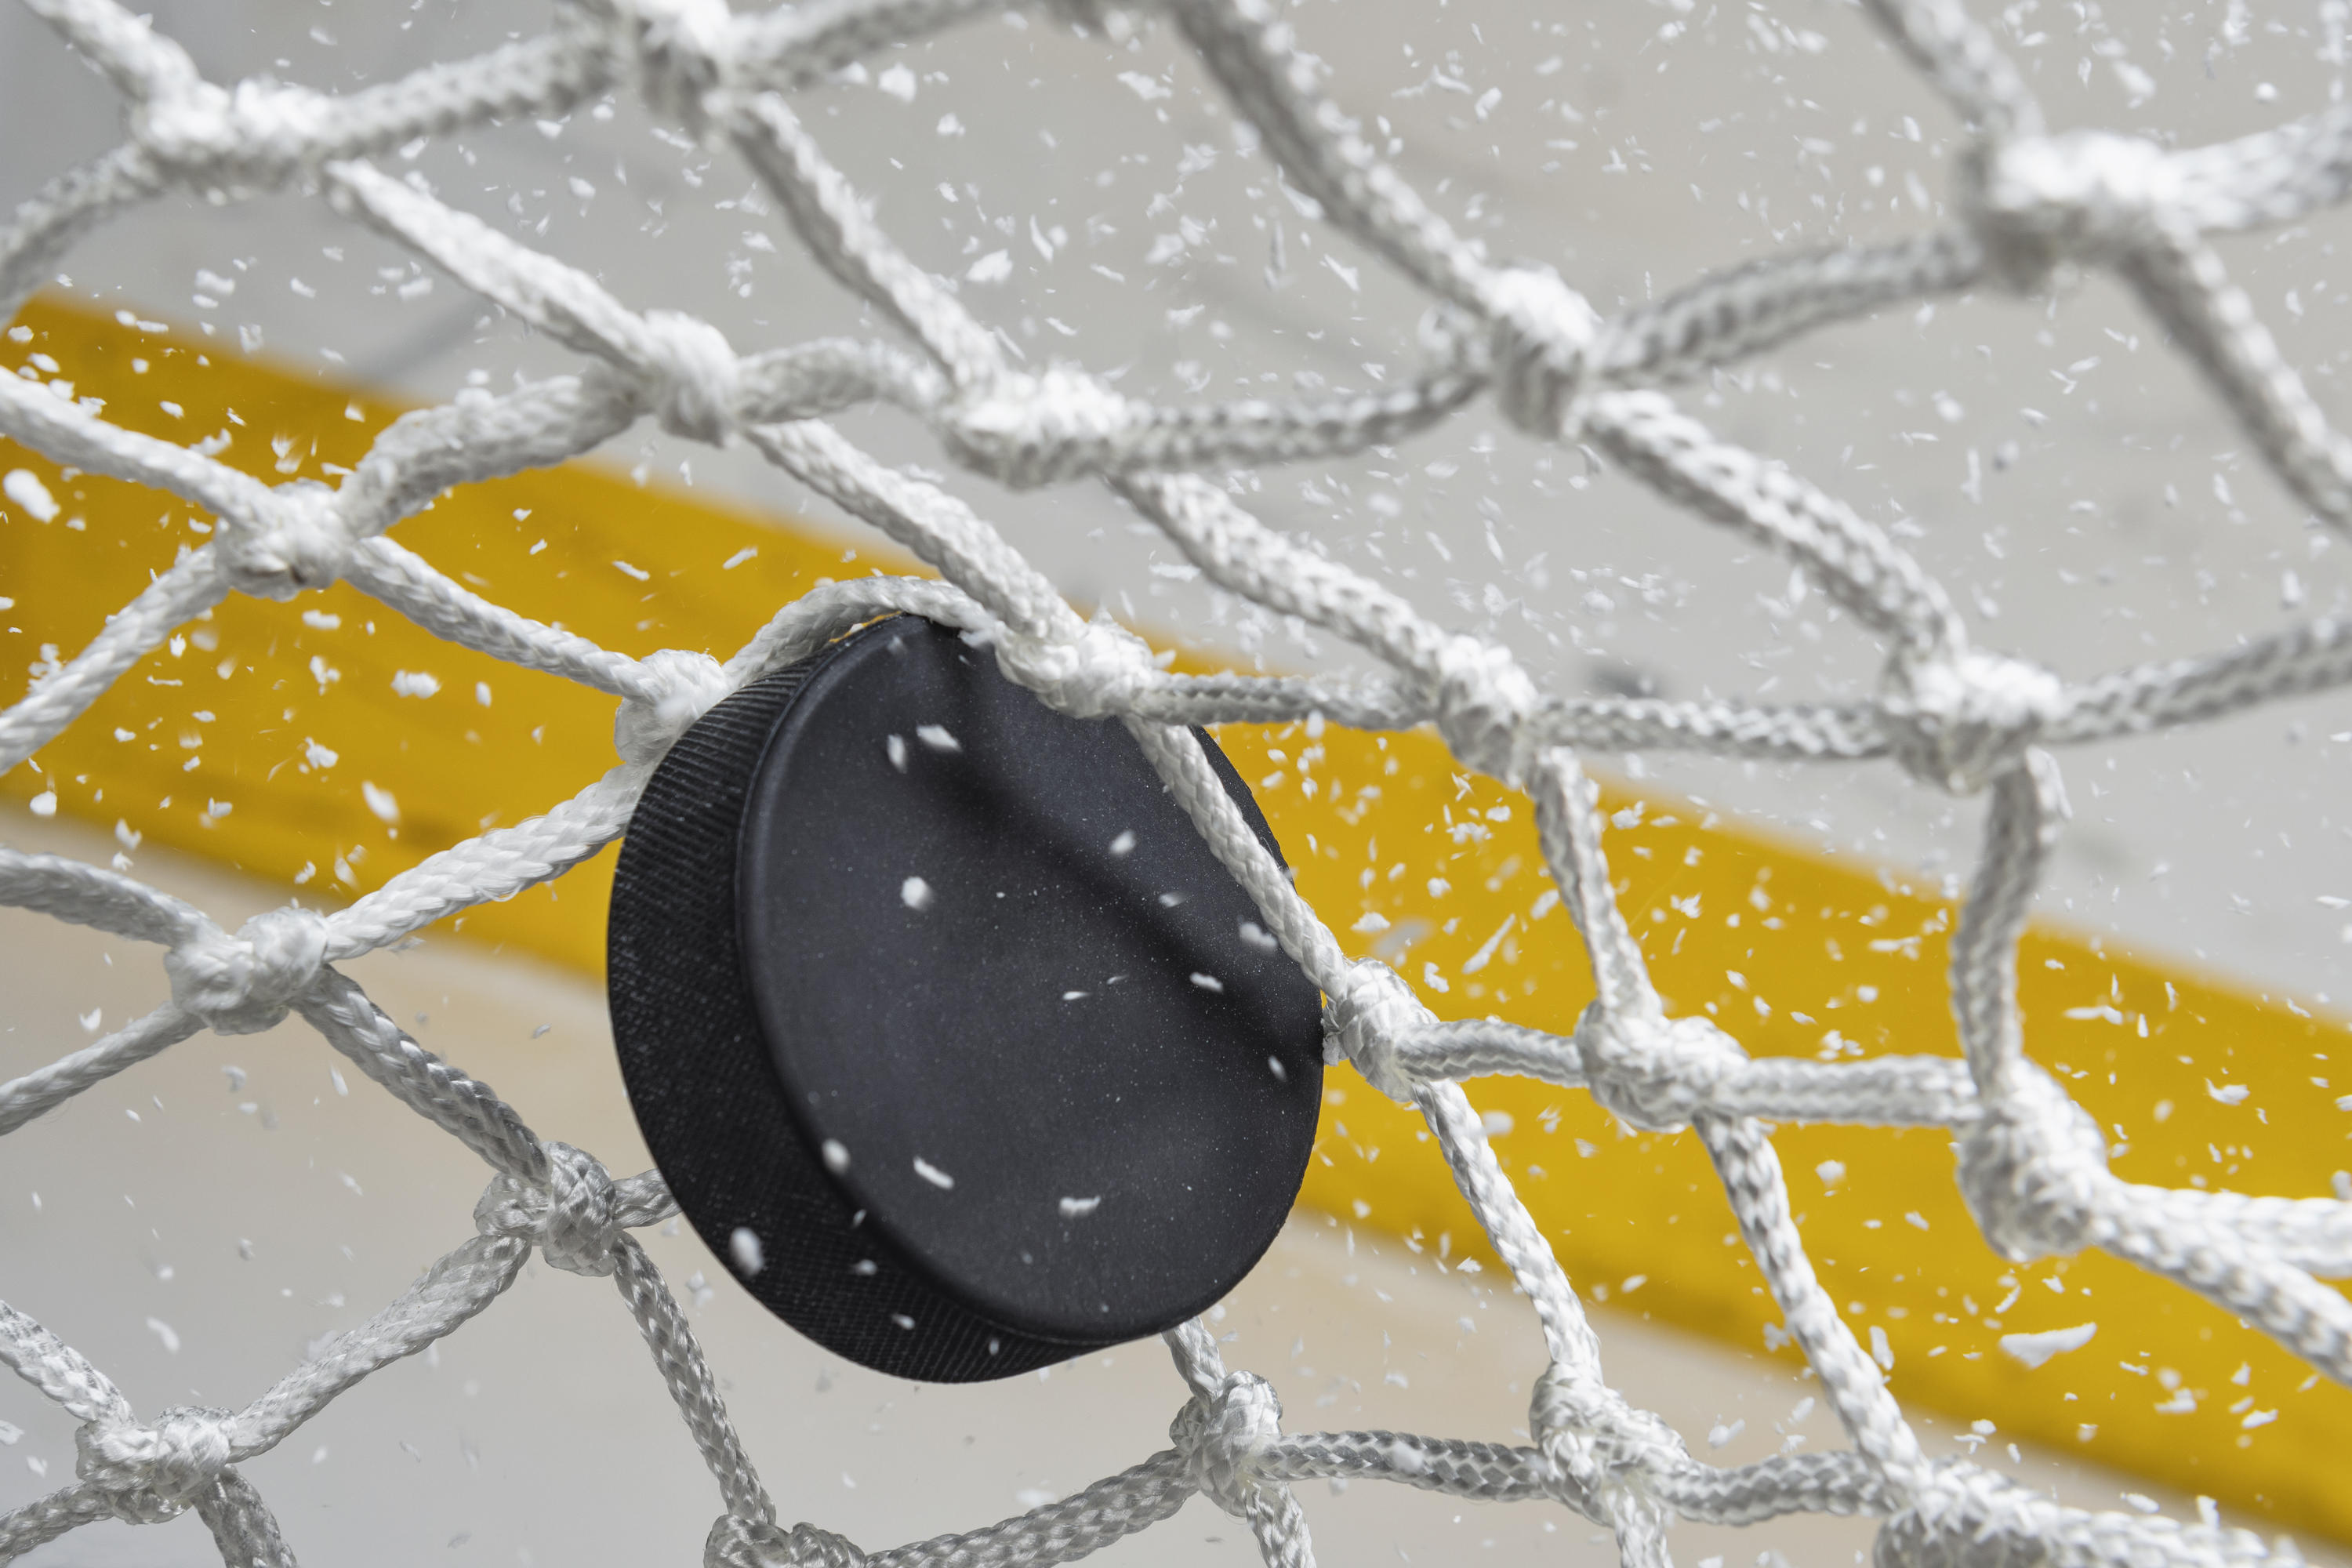 hockey puck in goalie net